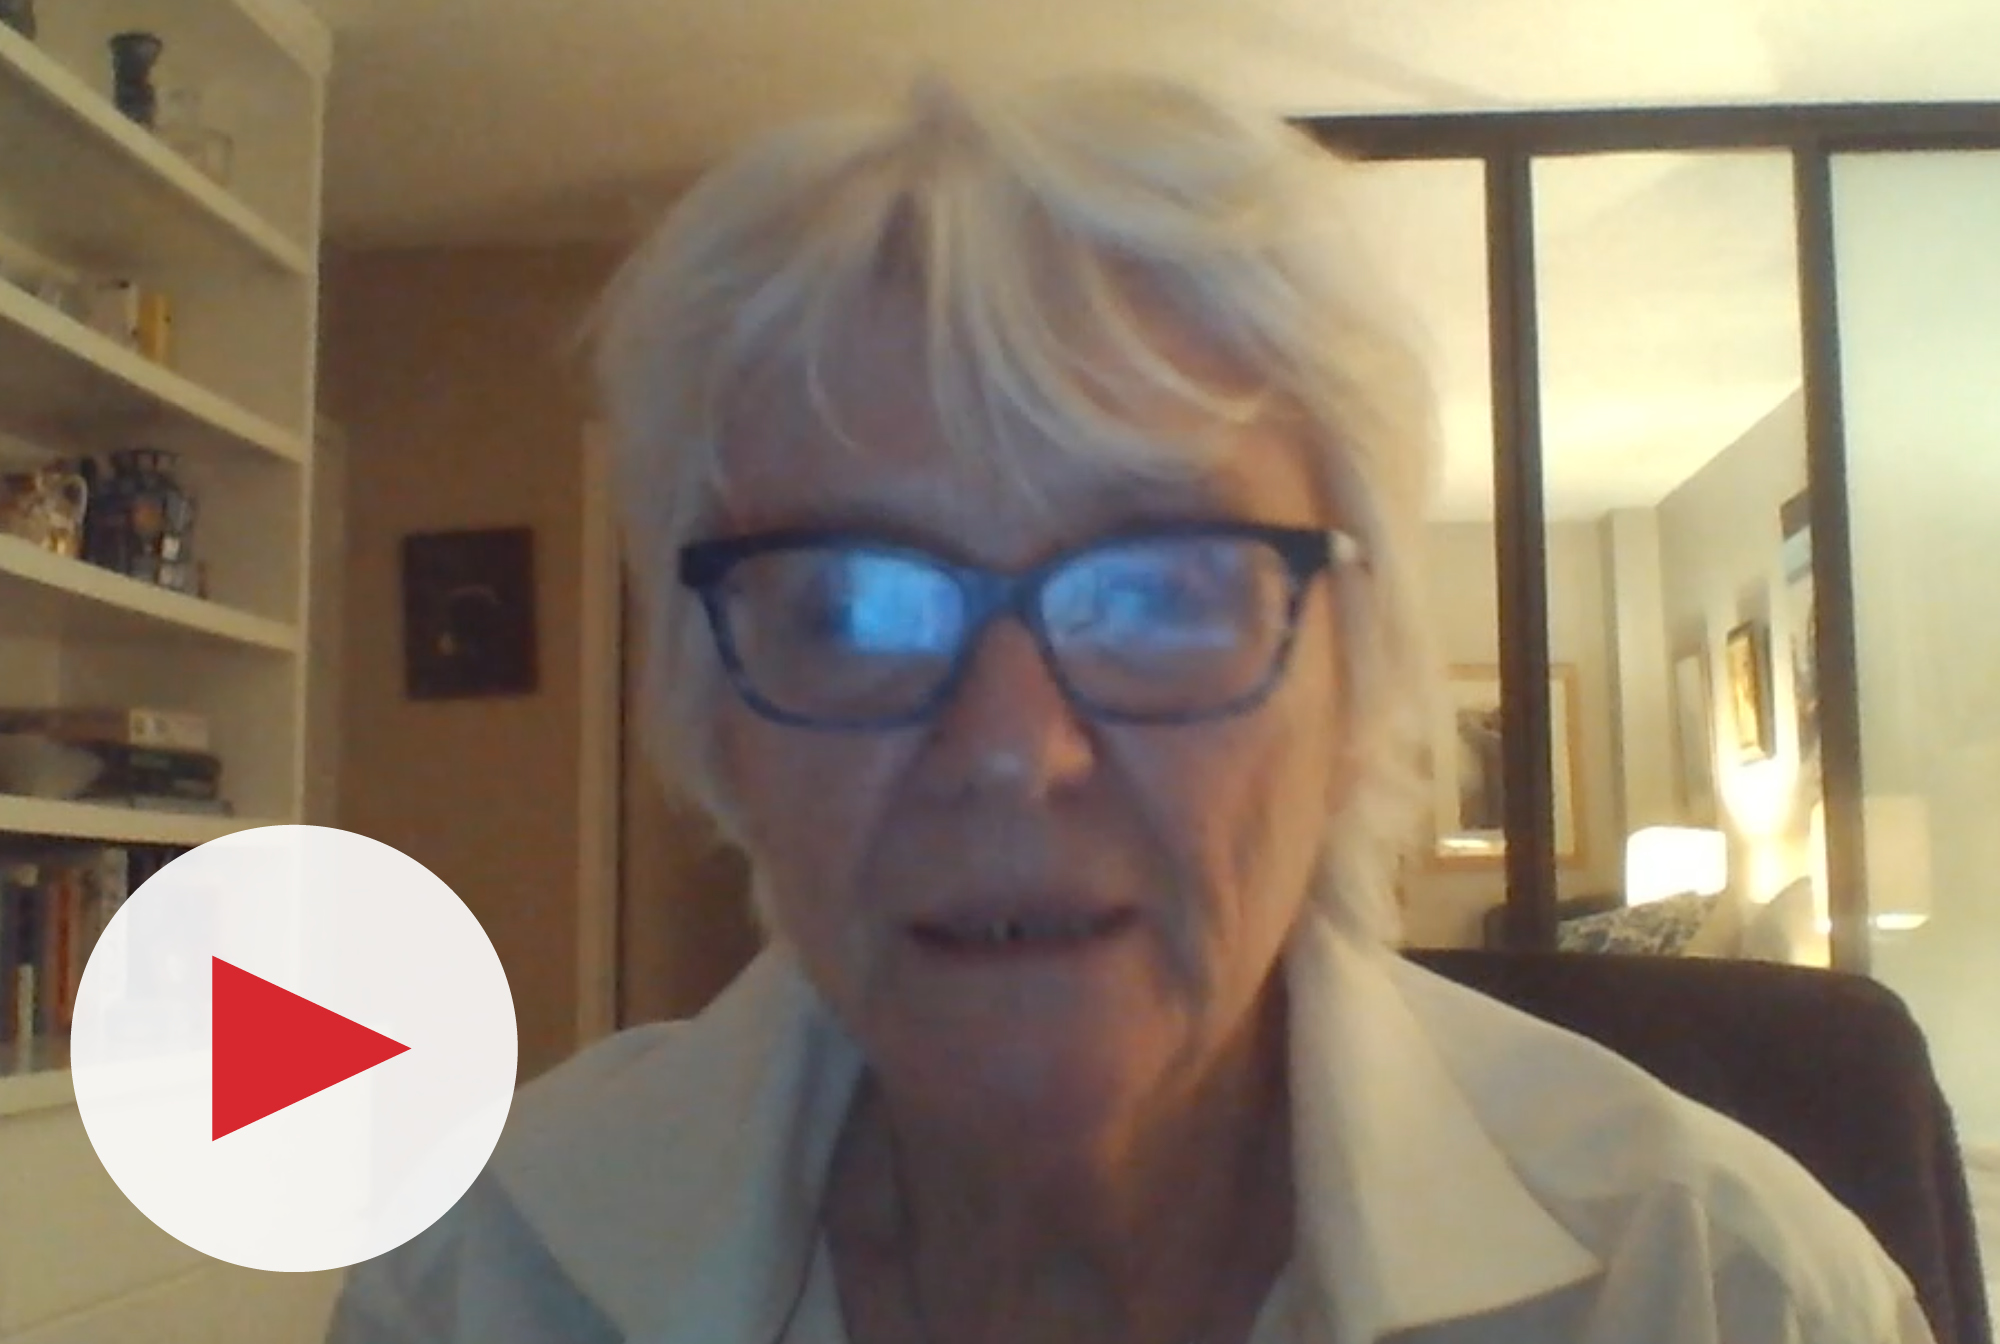 Video thumbnail of an older woman wearing glasses and looking into the camera.